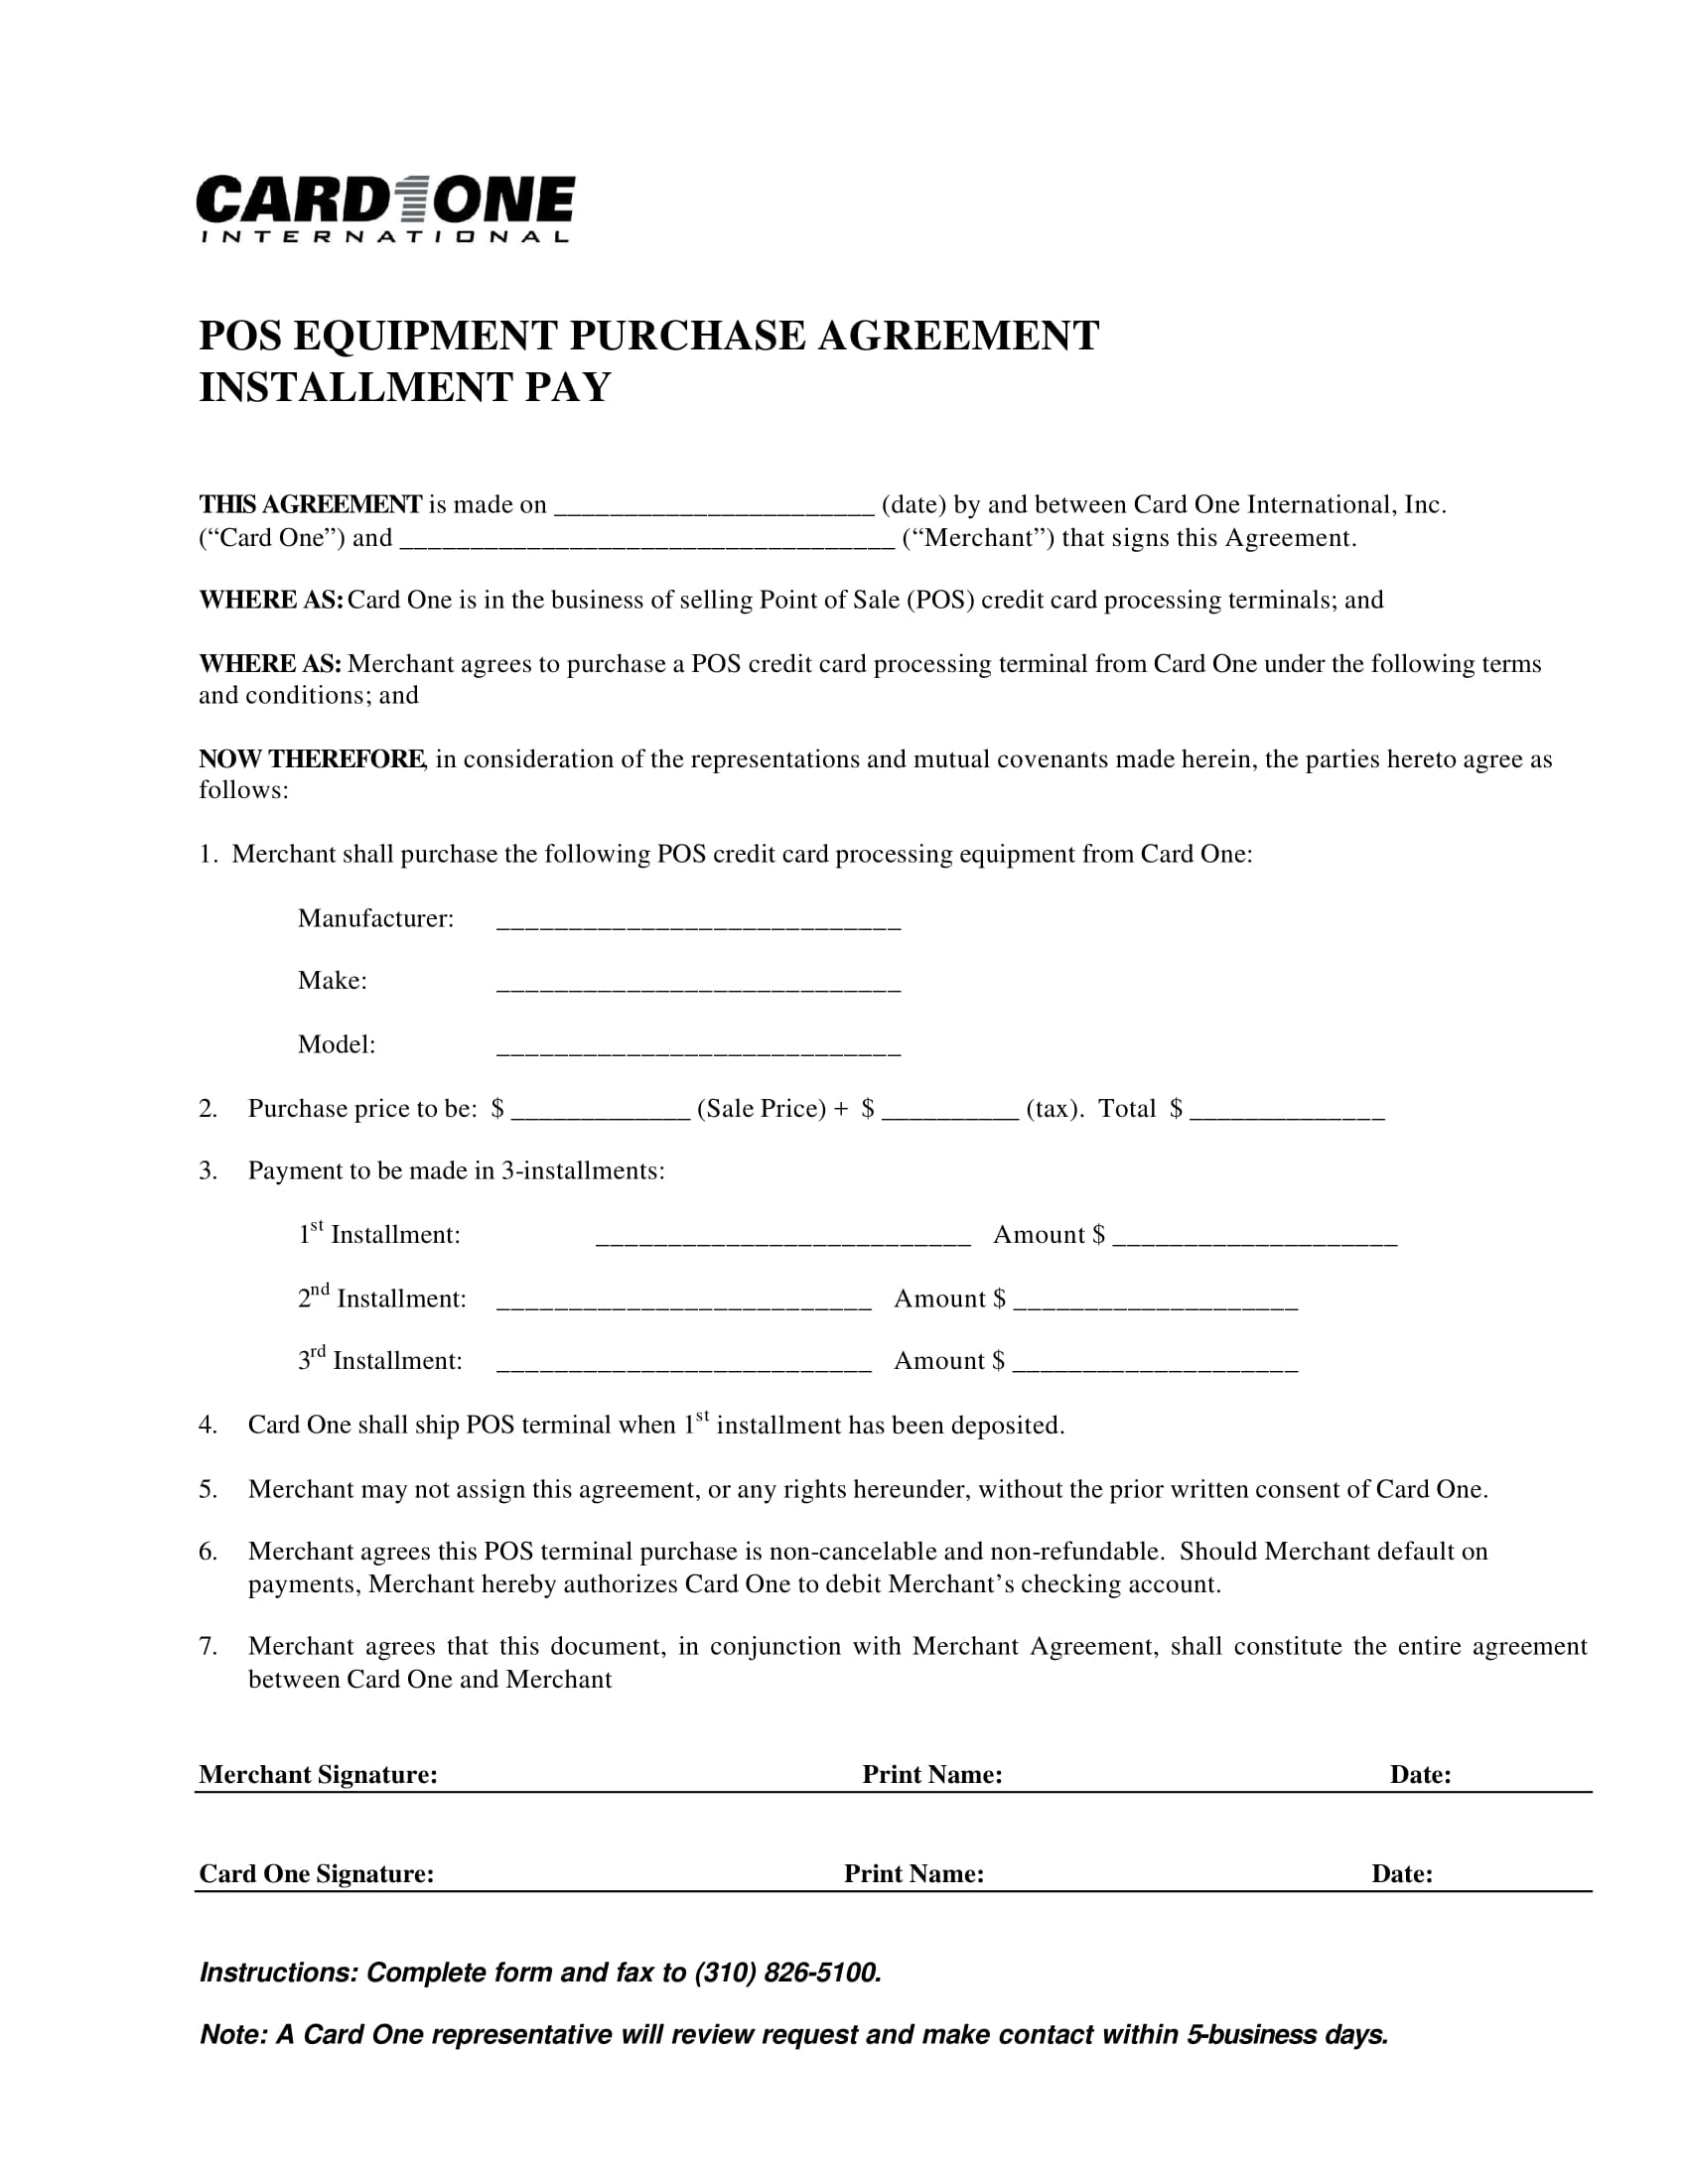 pos equipment purchase agreement example